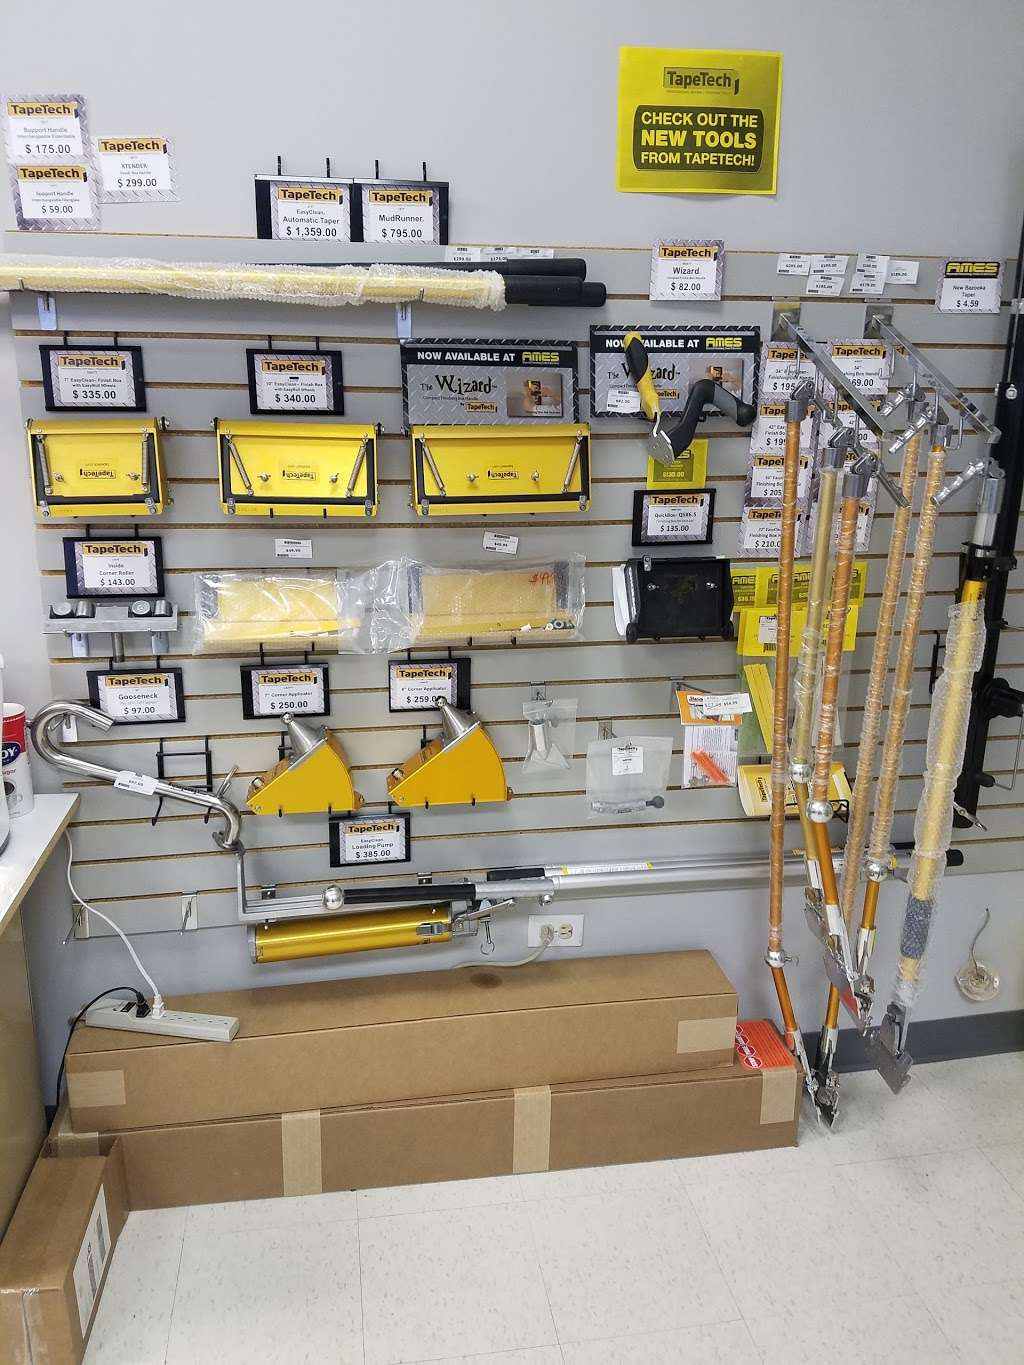 AMES Taping Tools - Store   6804 183rd St, Tinley Park, IL 60477, USA